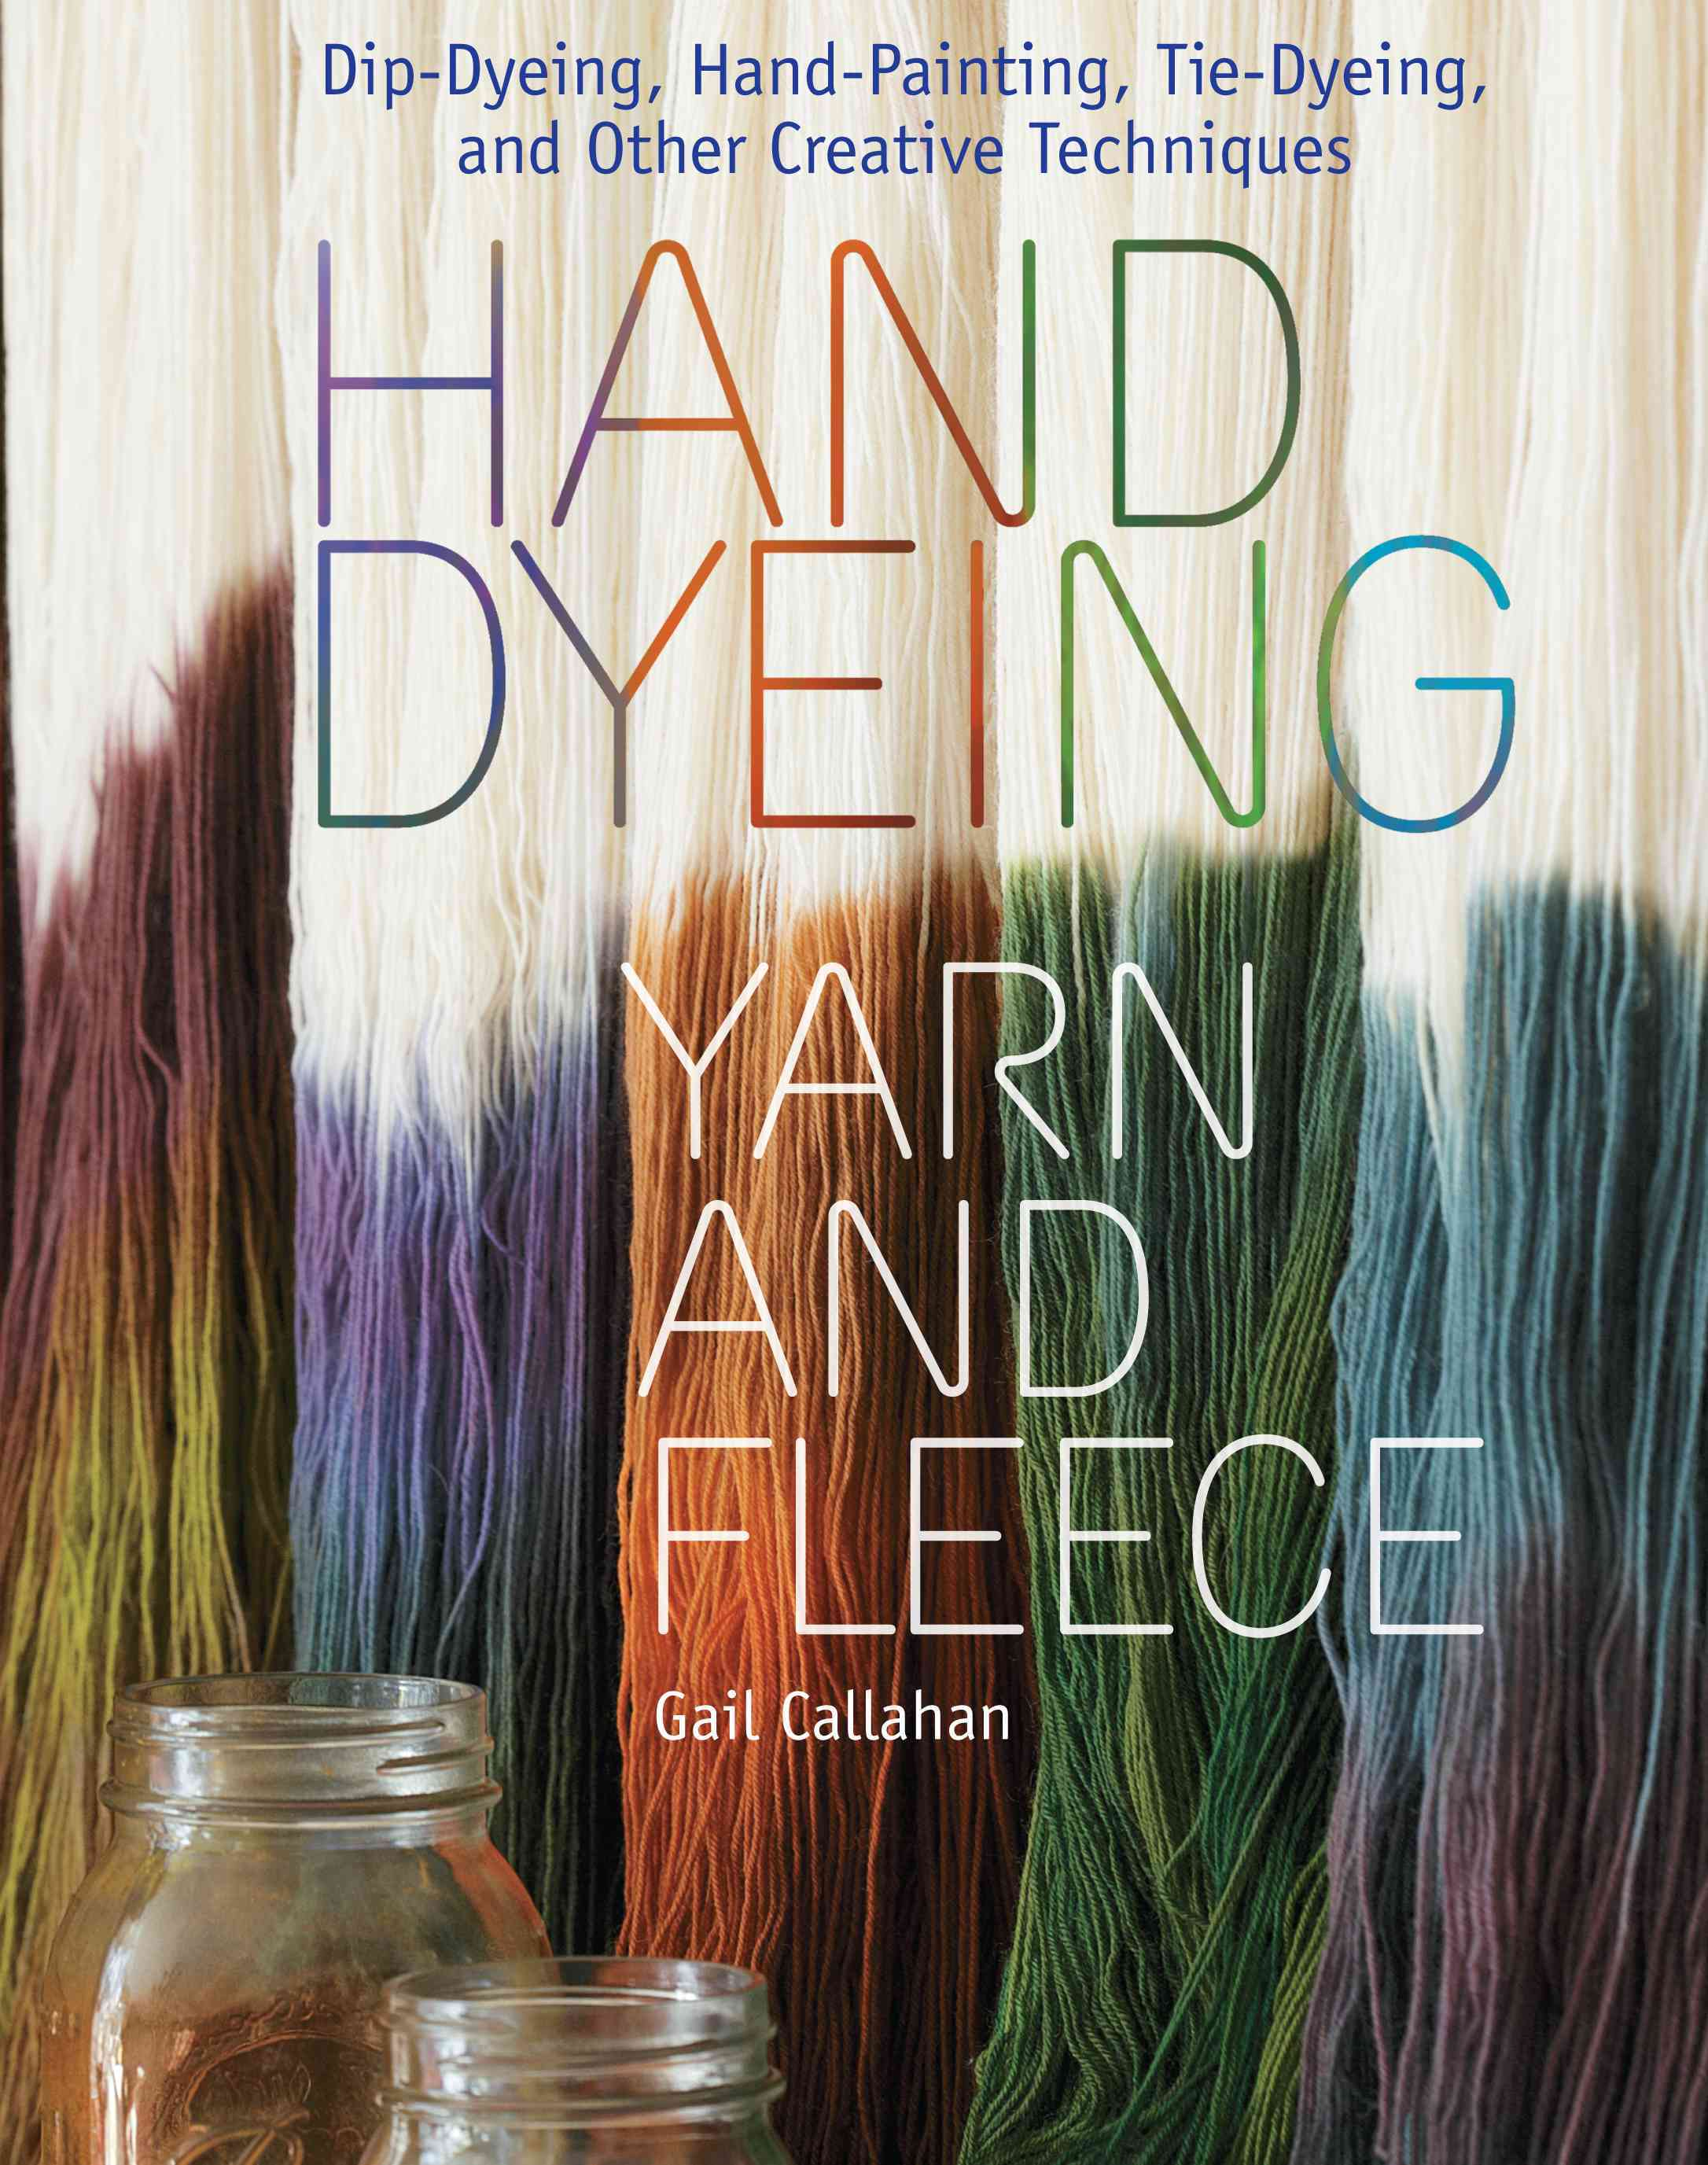 Hand Dyeing Yarn and Fleece: Dip-Dyeing, Hand-Painting, Tie-Dyeing, and Other Creative Techniques (Hardcover)